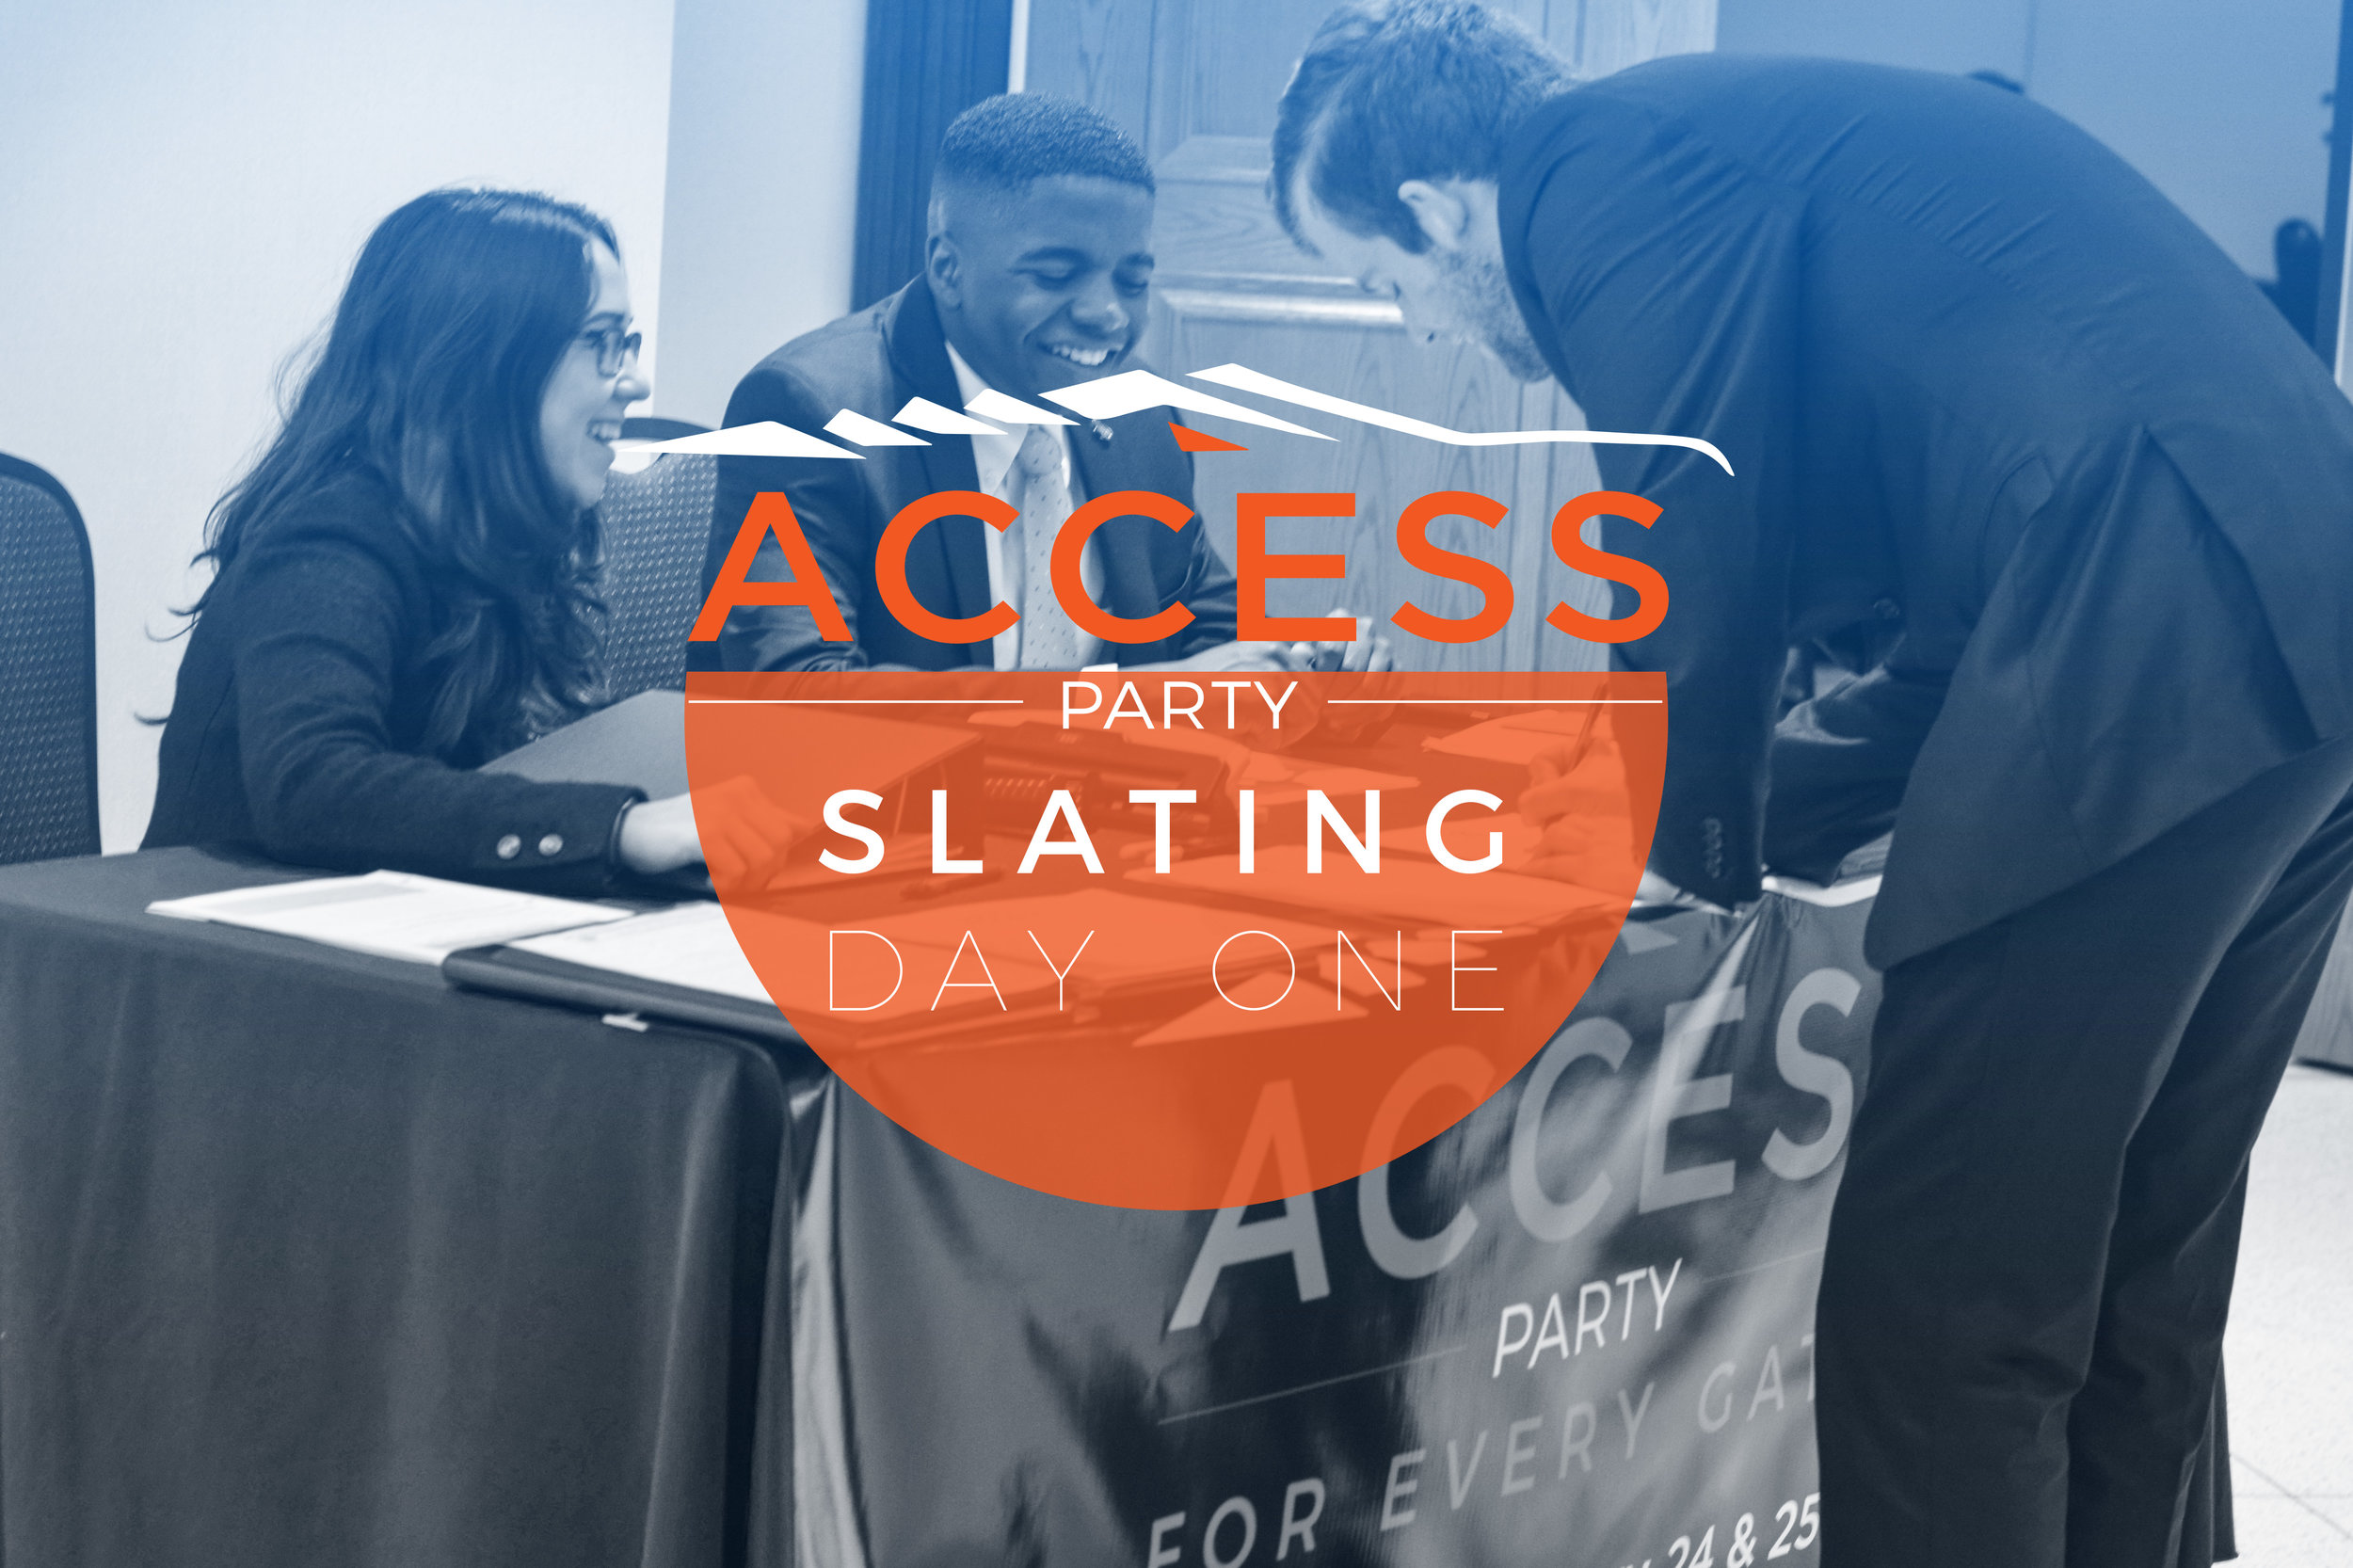 Access-Party-SlatingDay1.jpg